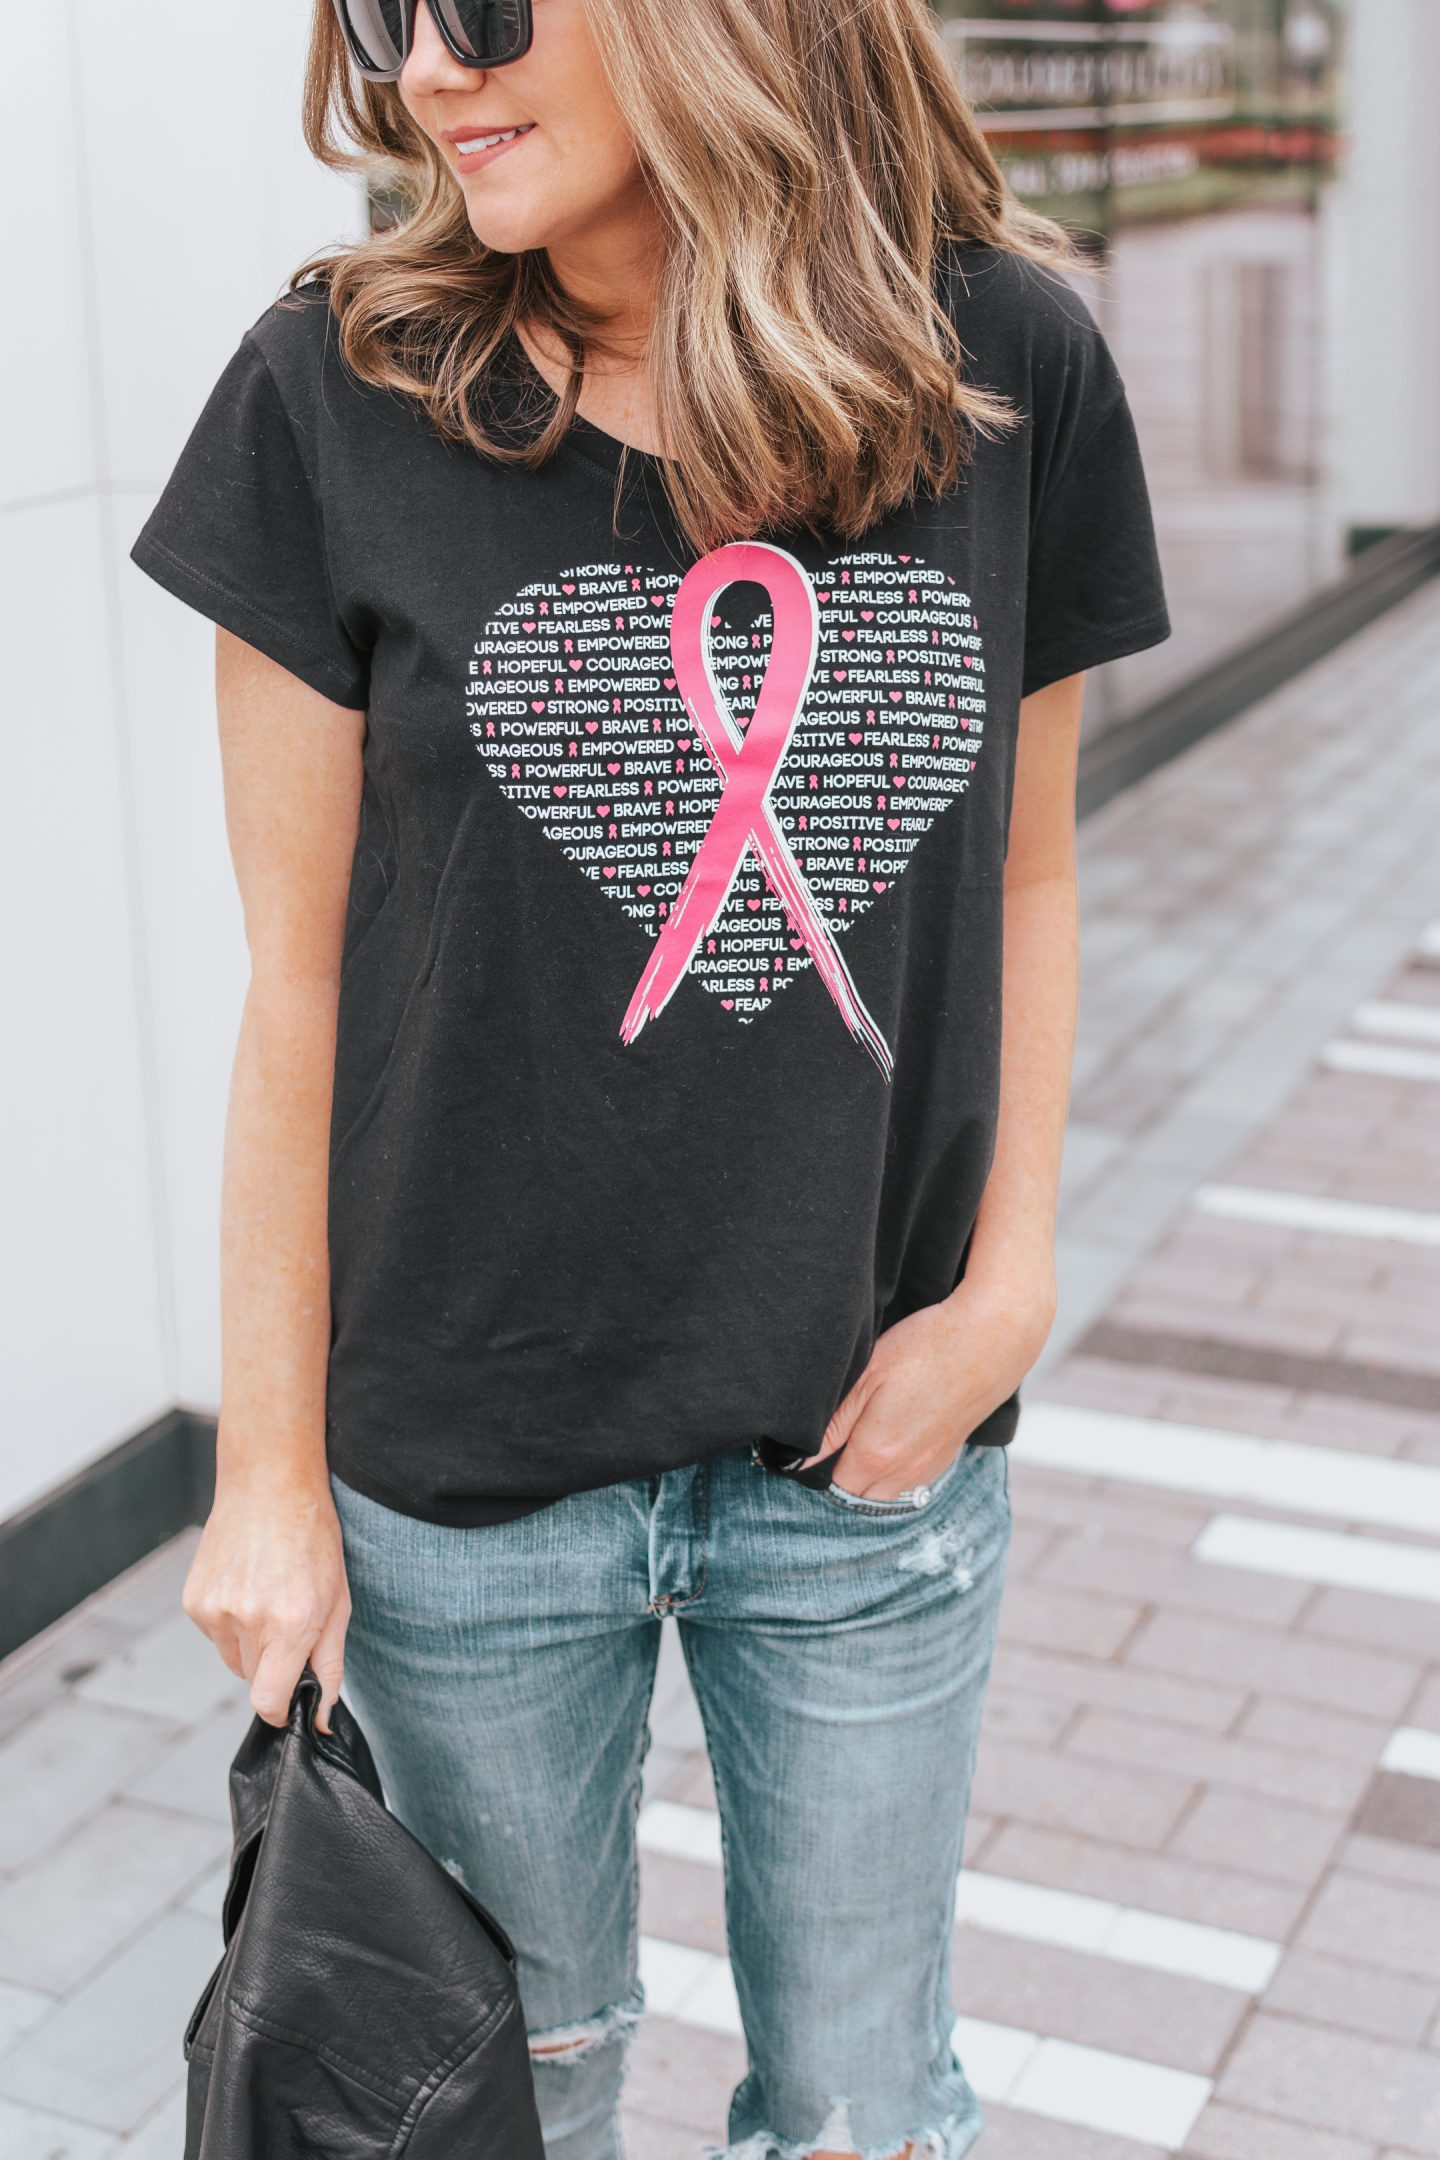 Beauty in Courage, Power in Strength, Women are fearless, strong, powerful and courageous, JCPenney, breast cancer awareness, City Streets BCAM screen tee, we are courageous, women, and the fight to end breast cancer